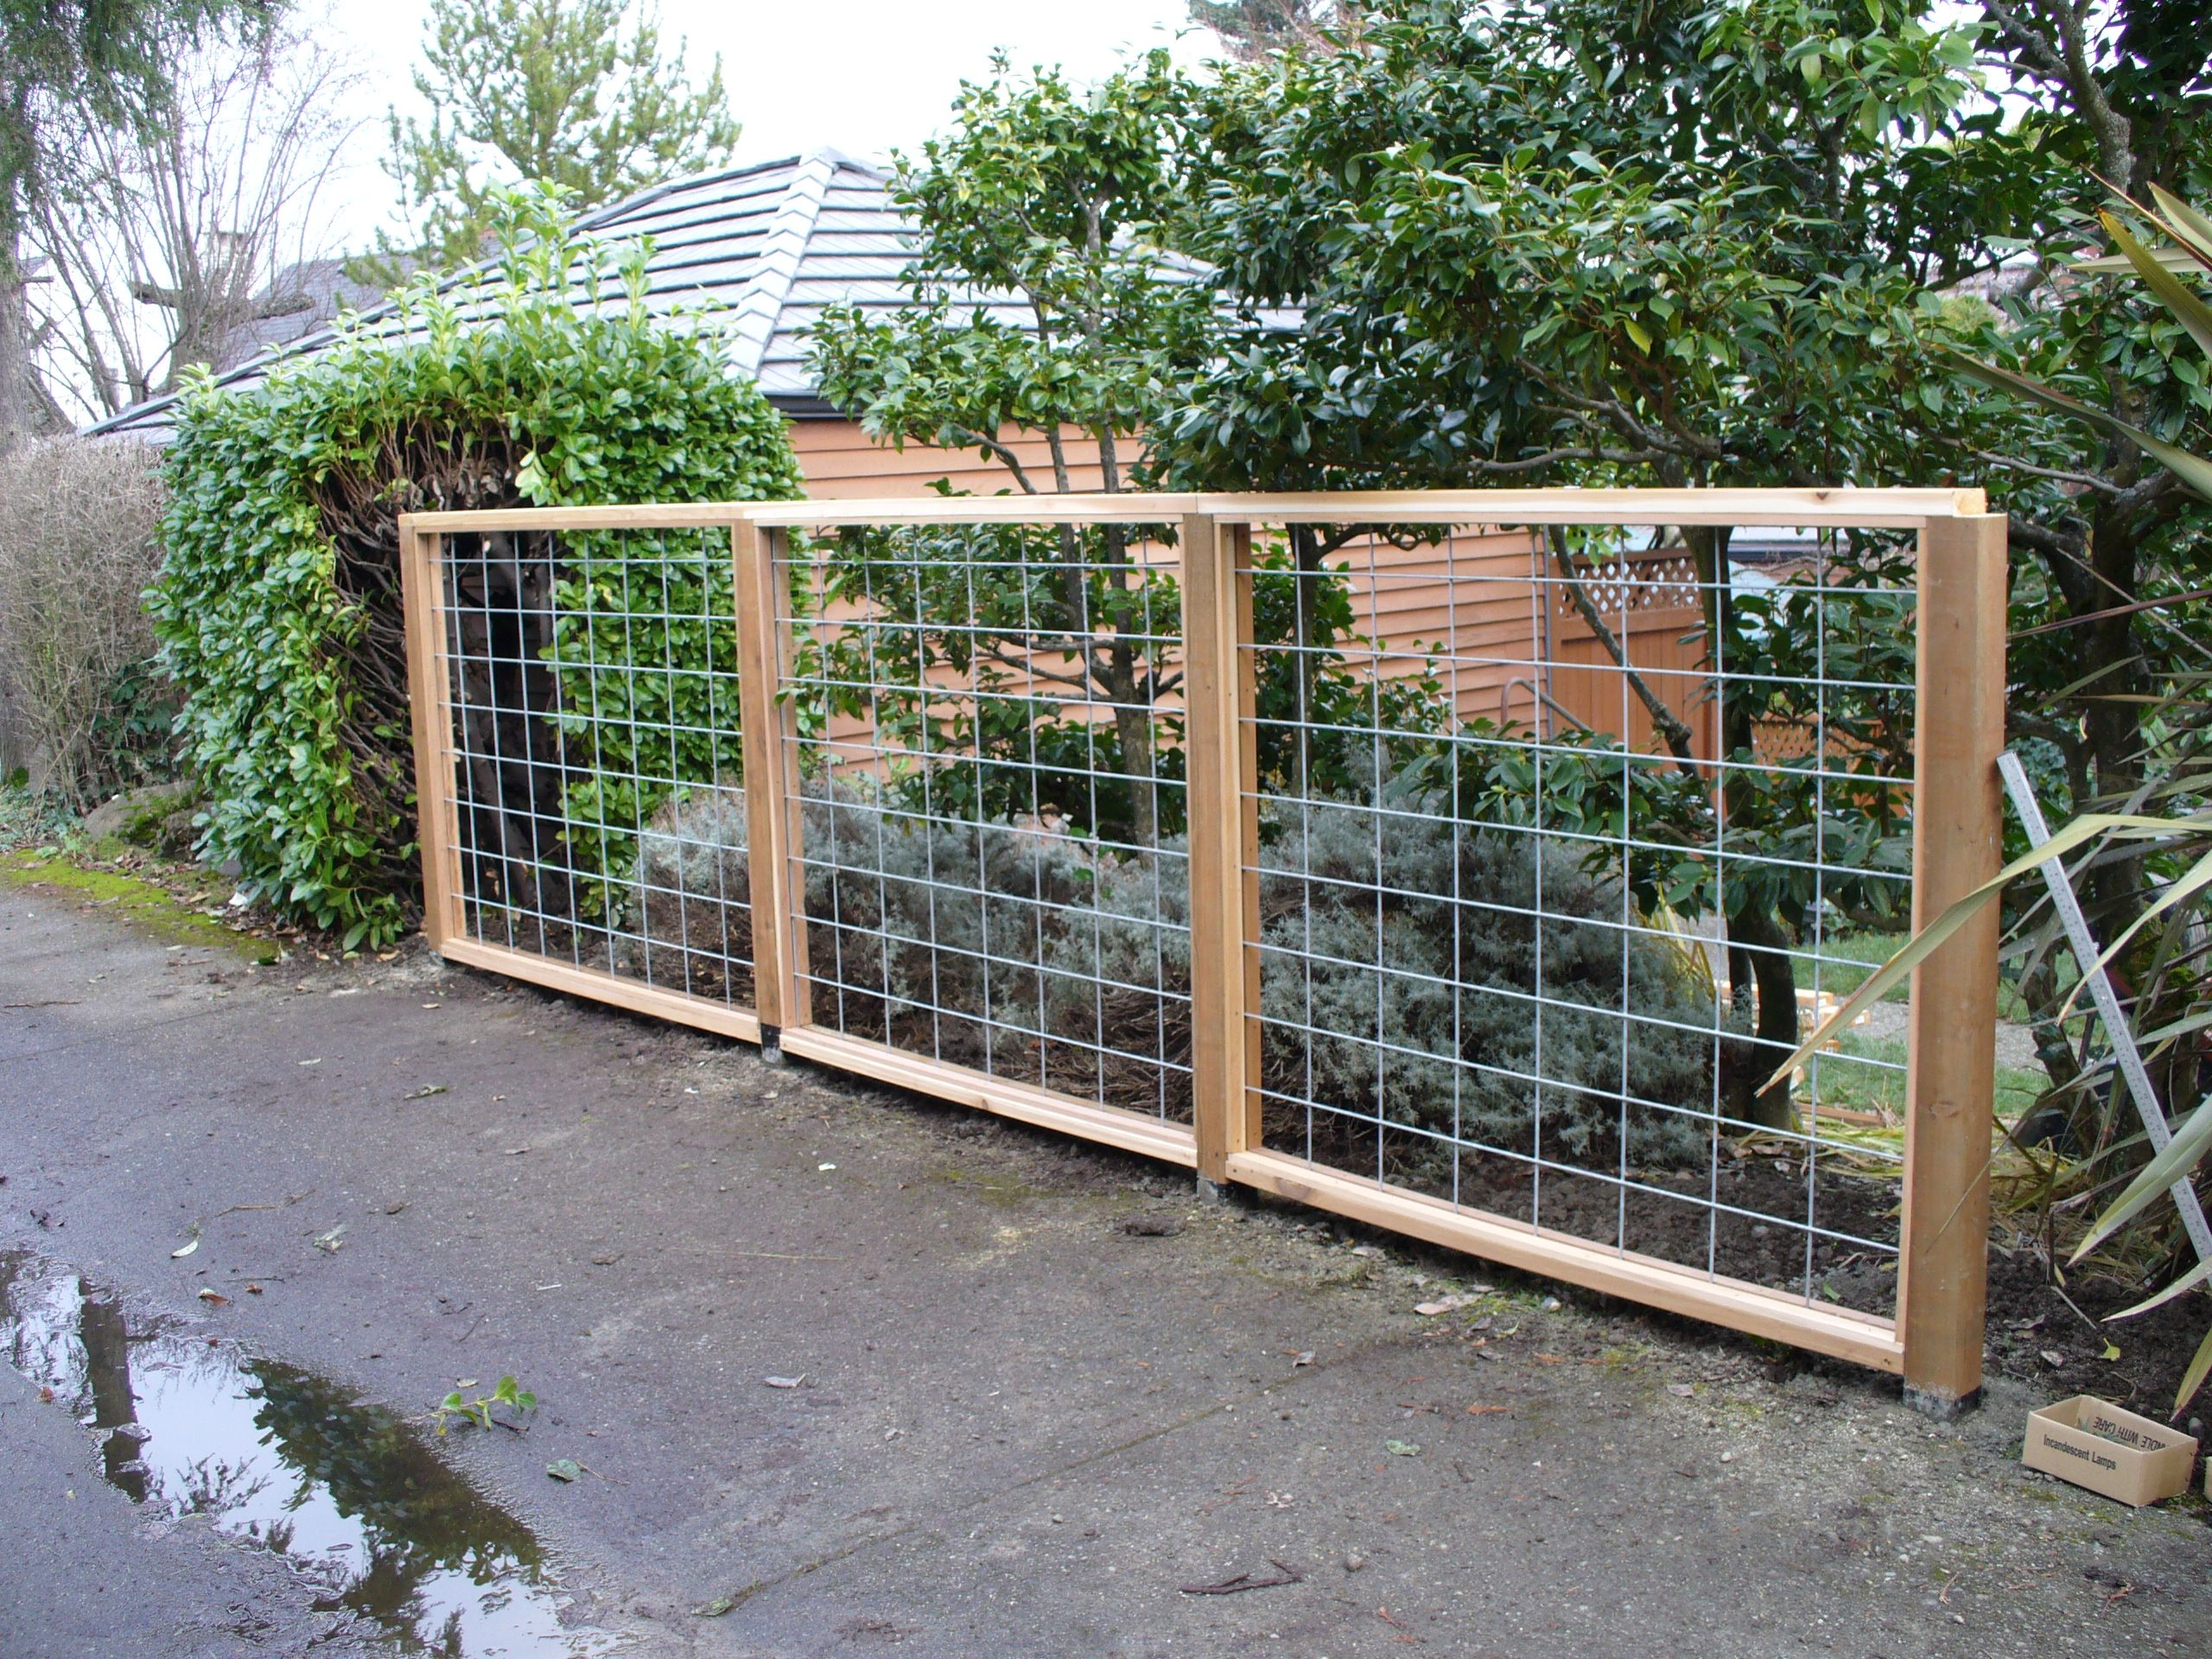 Rigid wire | Garden | Pinterest | Fence gate, Wire fence and Gates